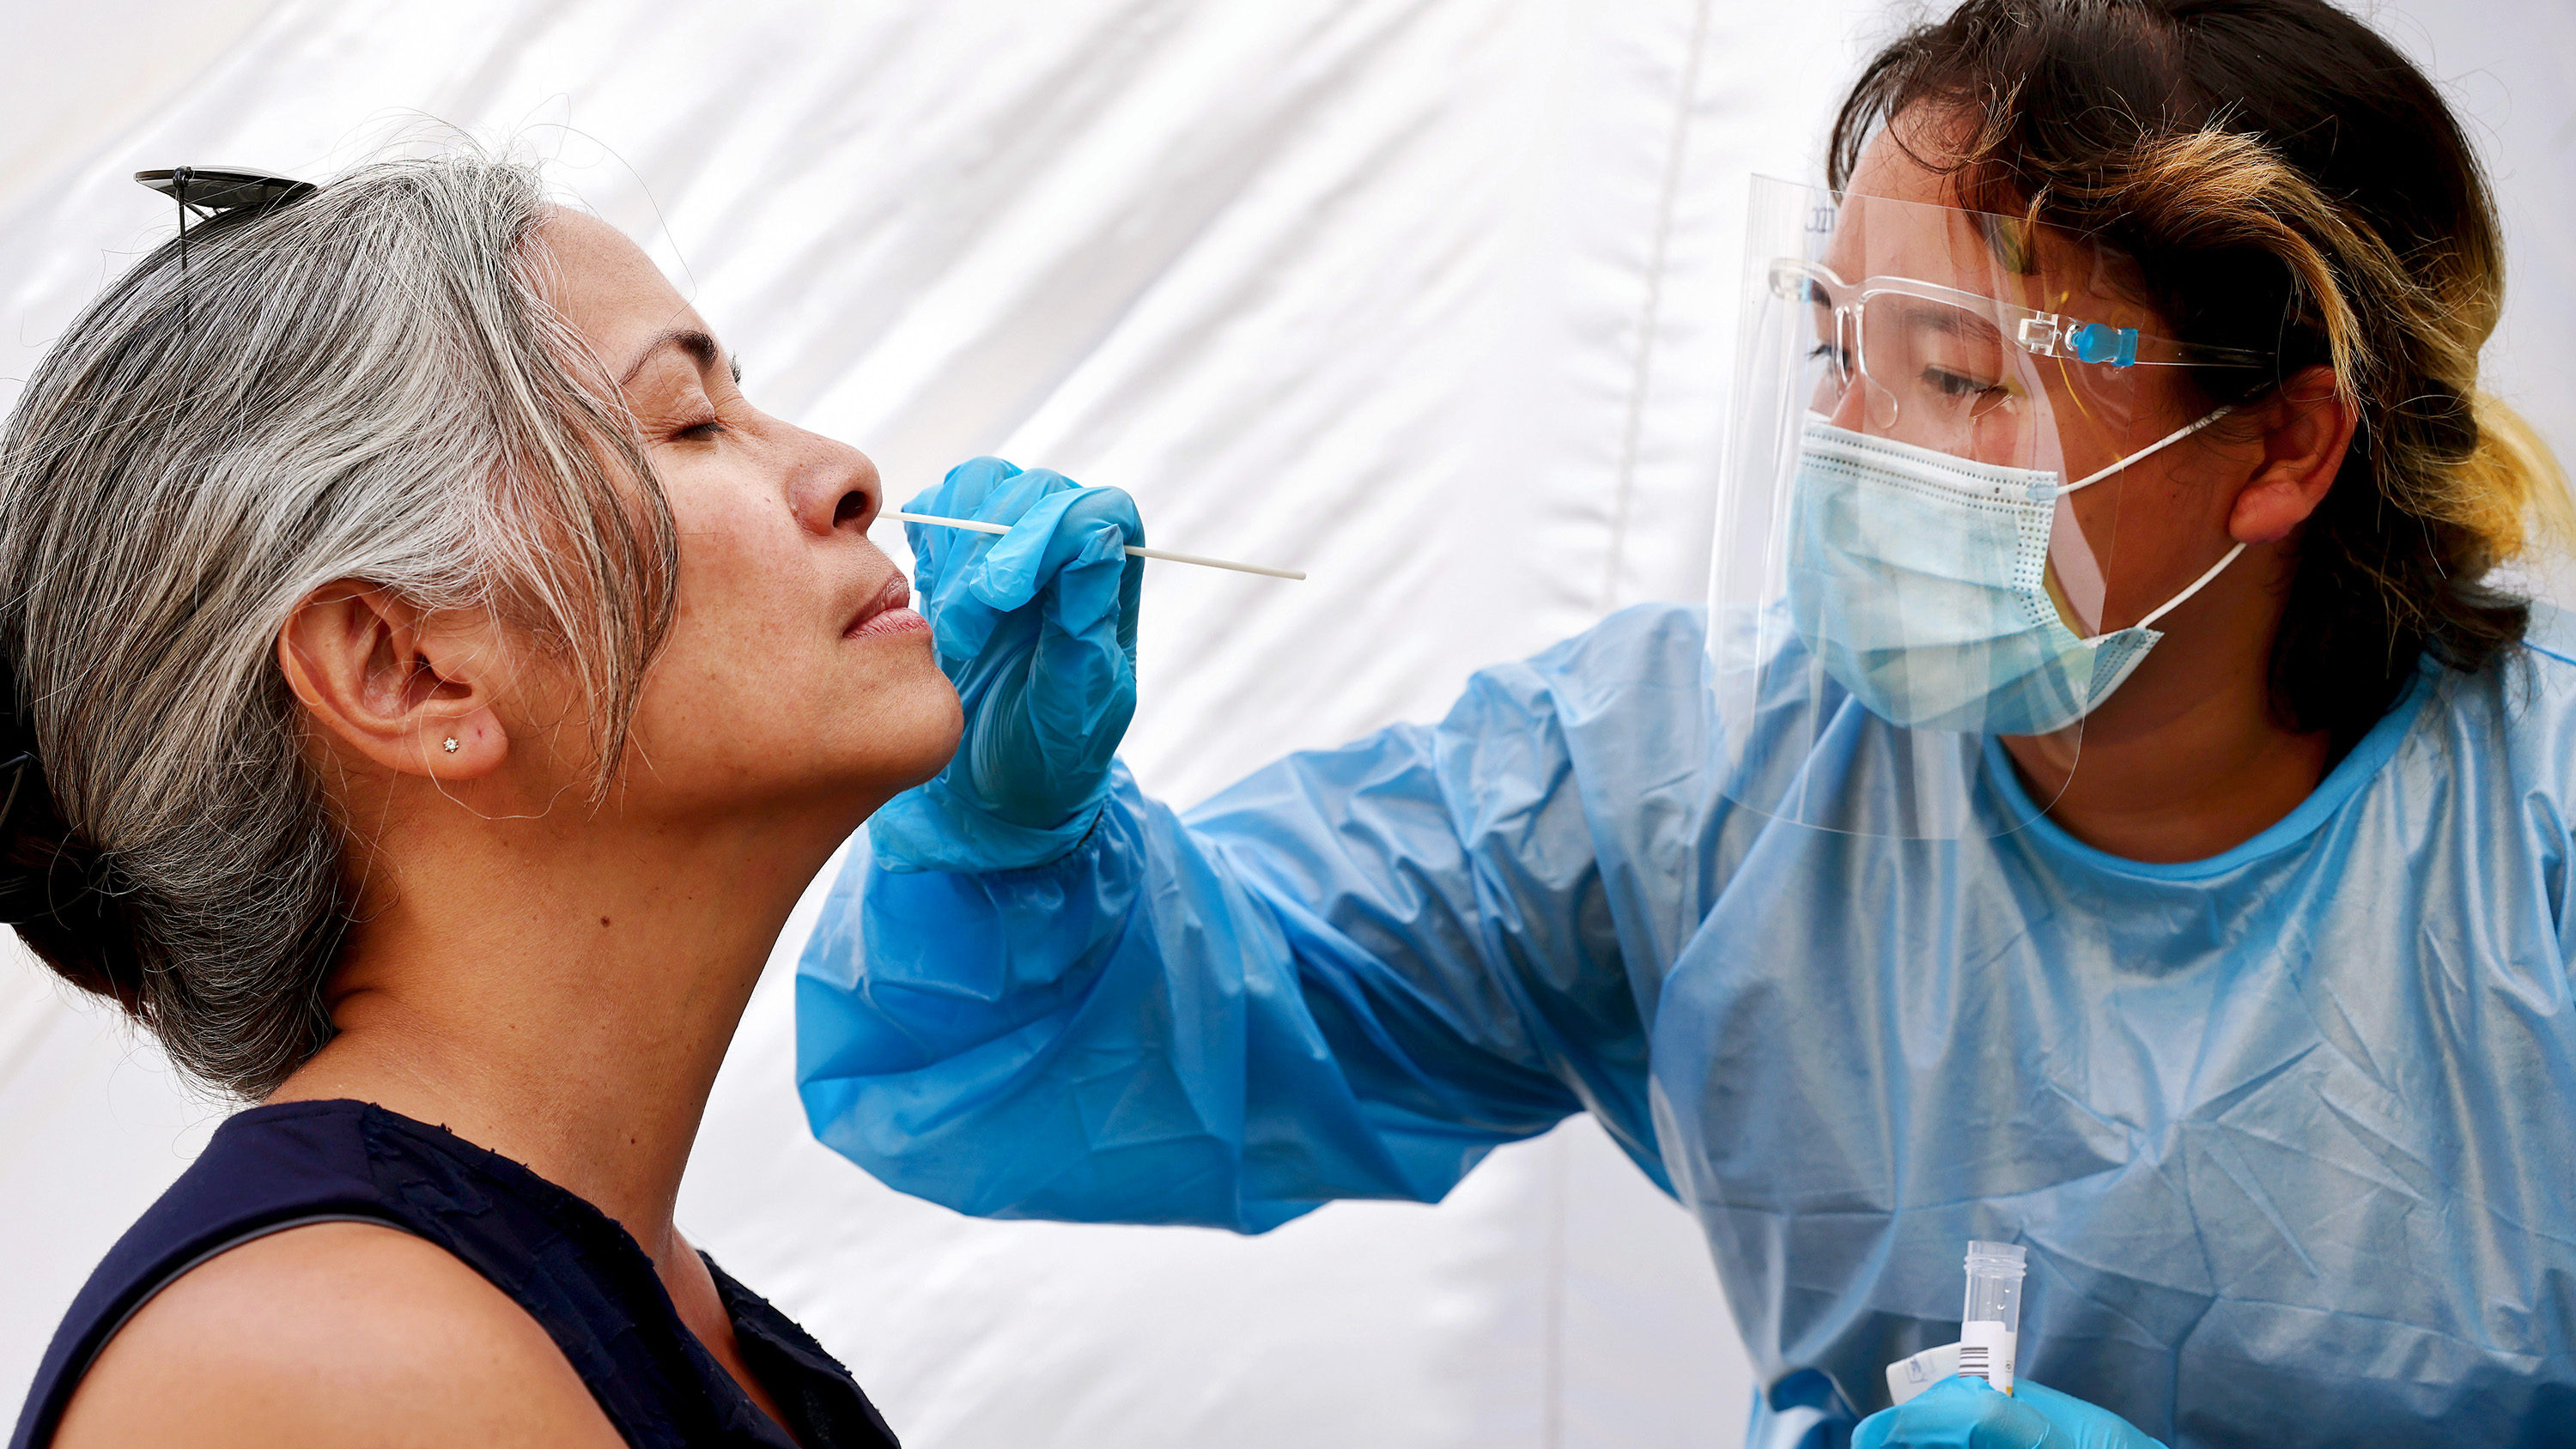 medical assistant administers a COVID-19 test in Los Angeles